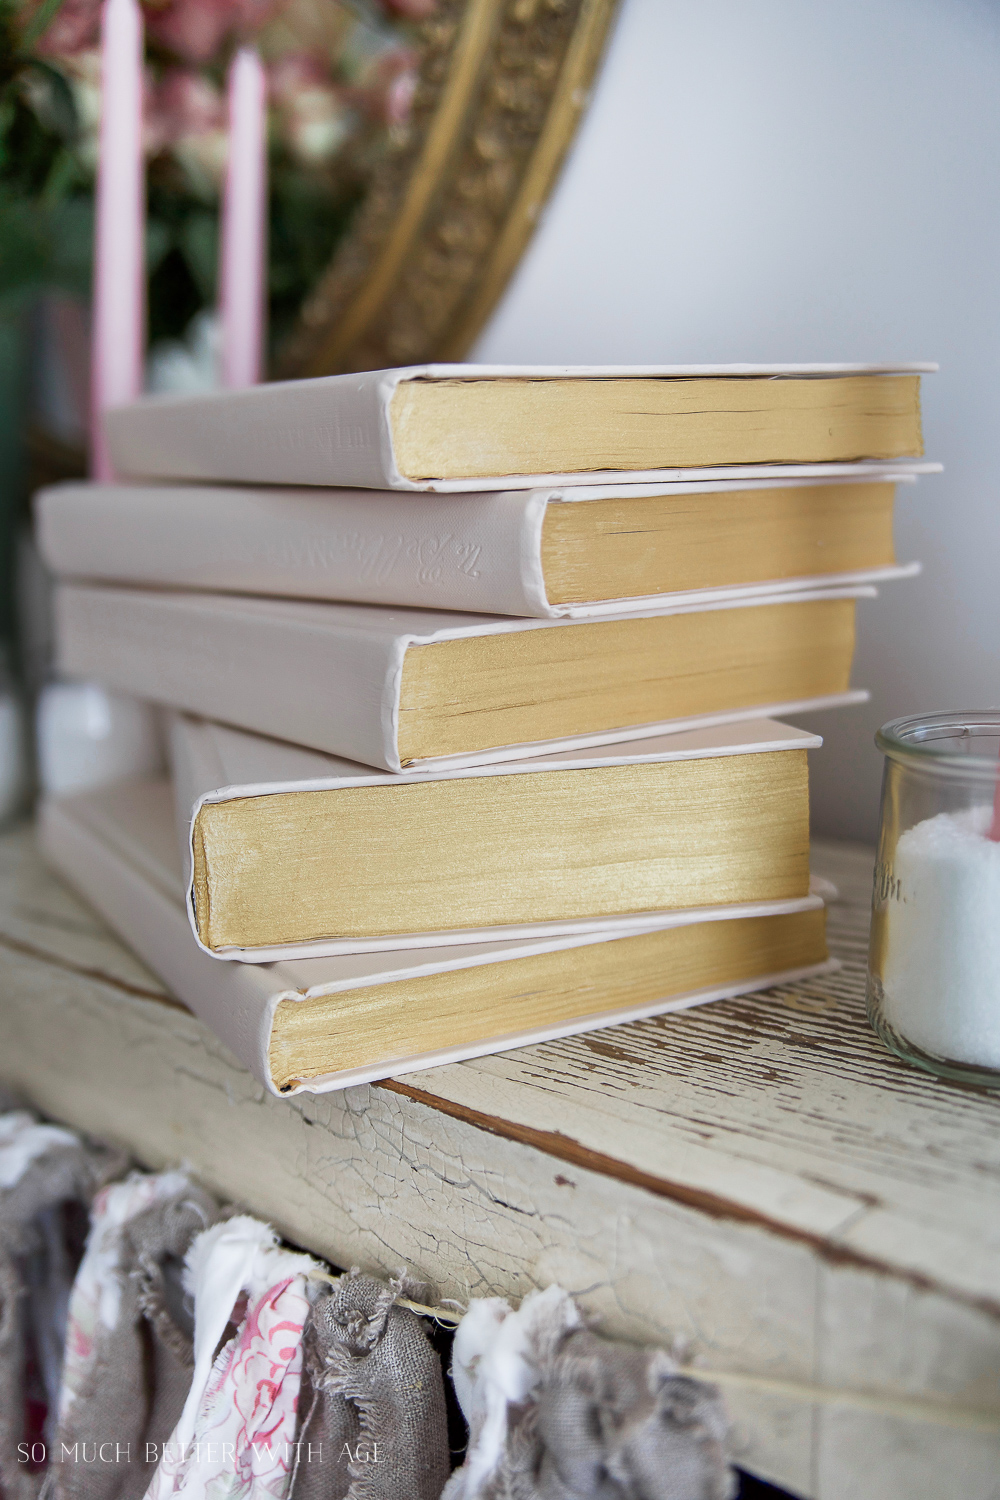 Painted Pink and Metallic Gold Books for Valentine's Day/ stacked books - So Much Better With Age